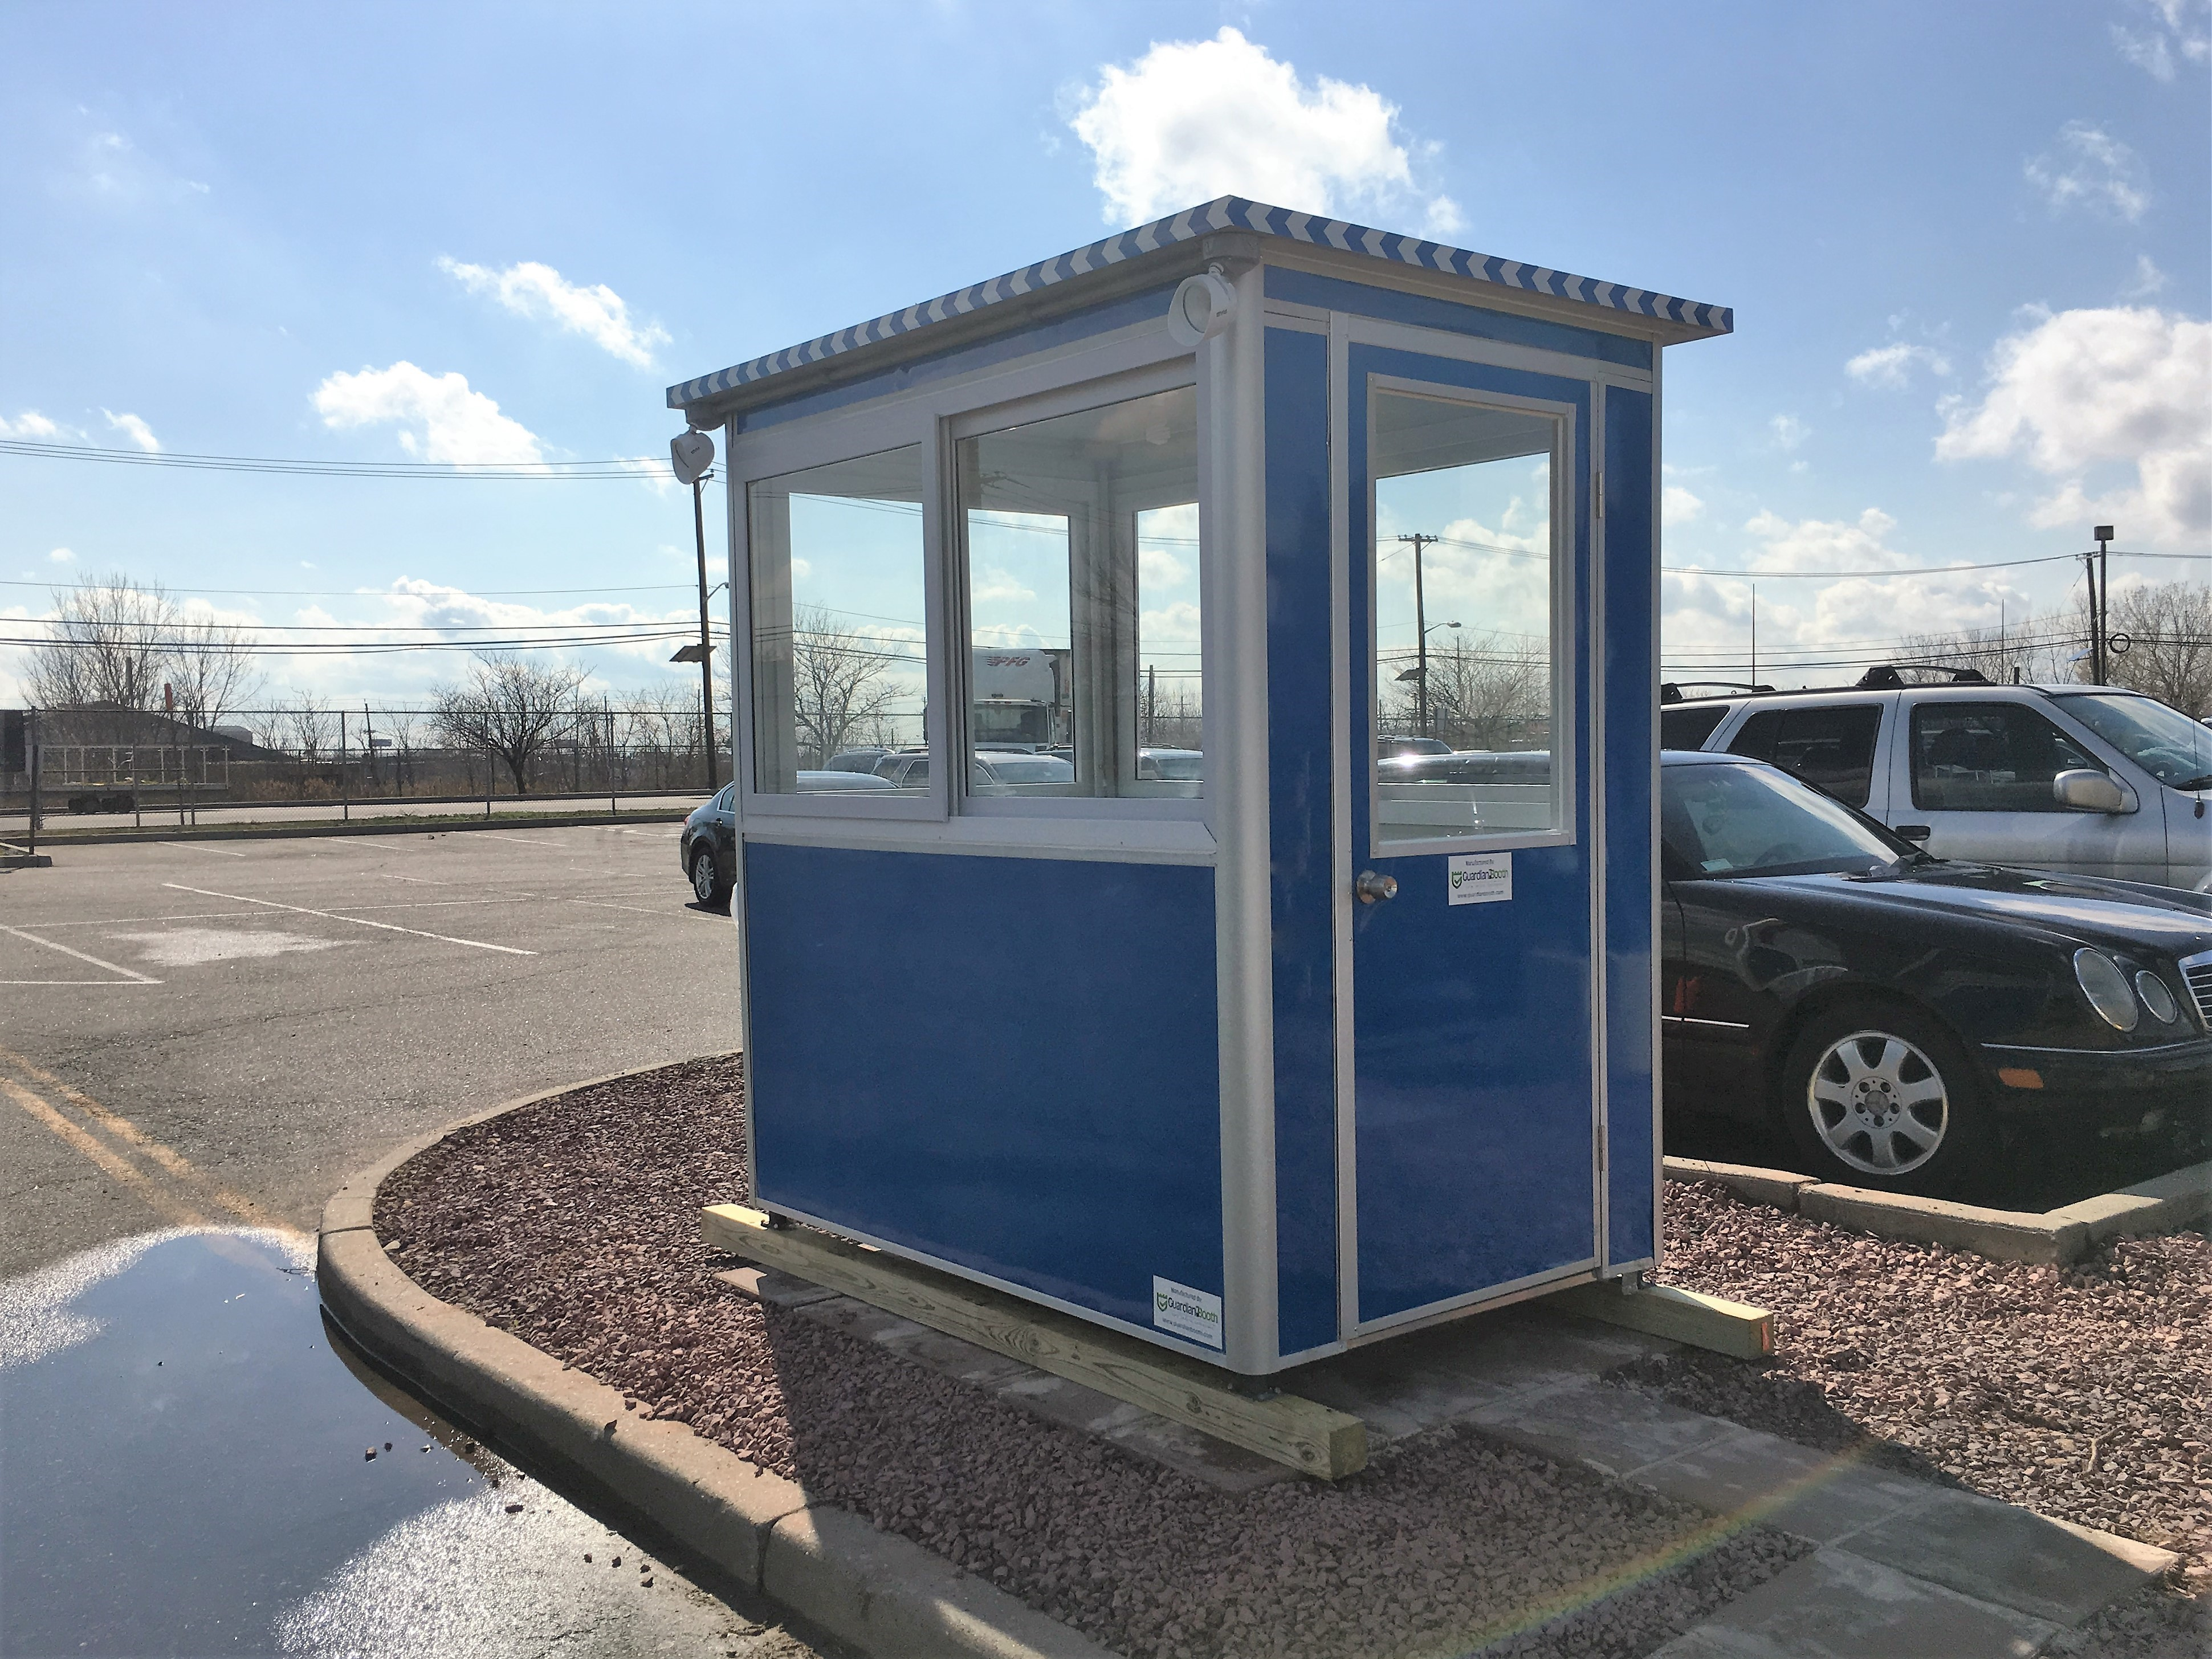 attendant booth located in Elizabeth